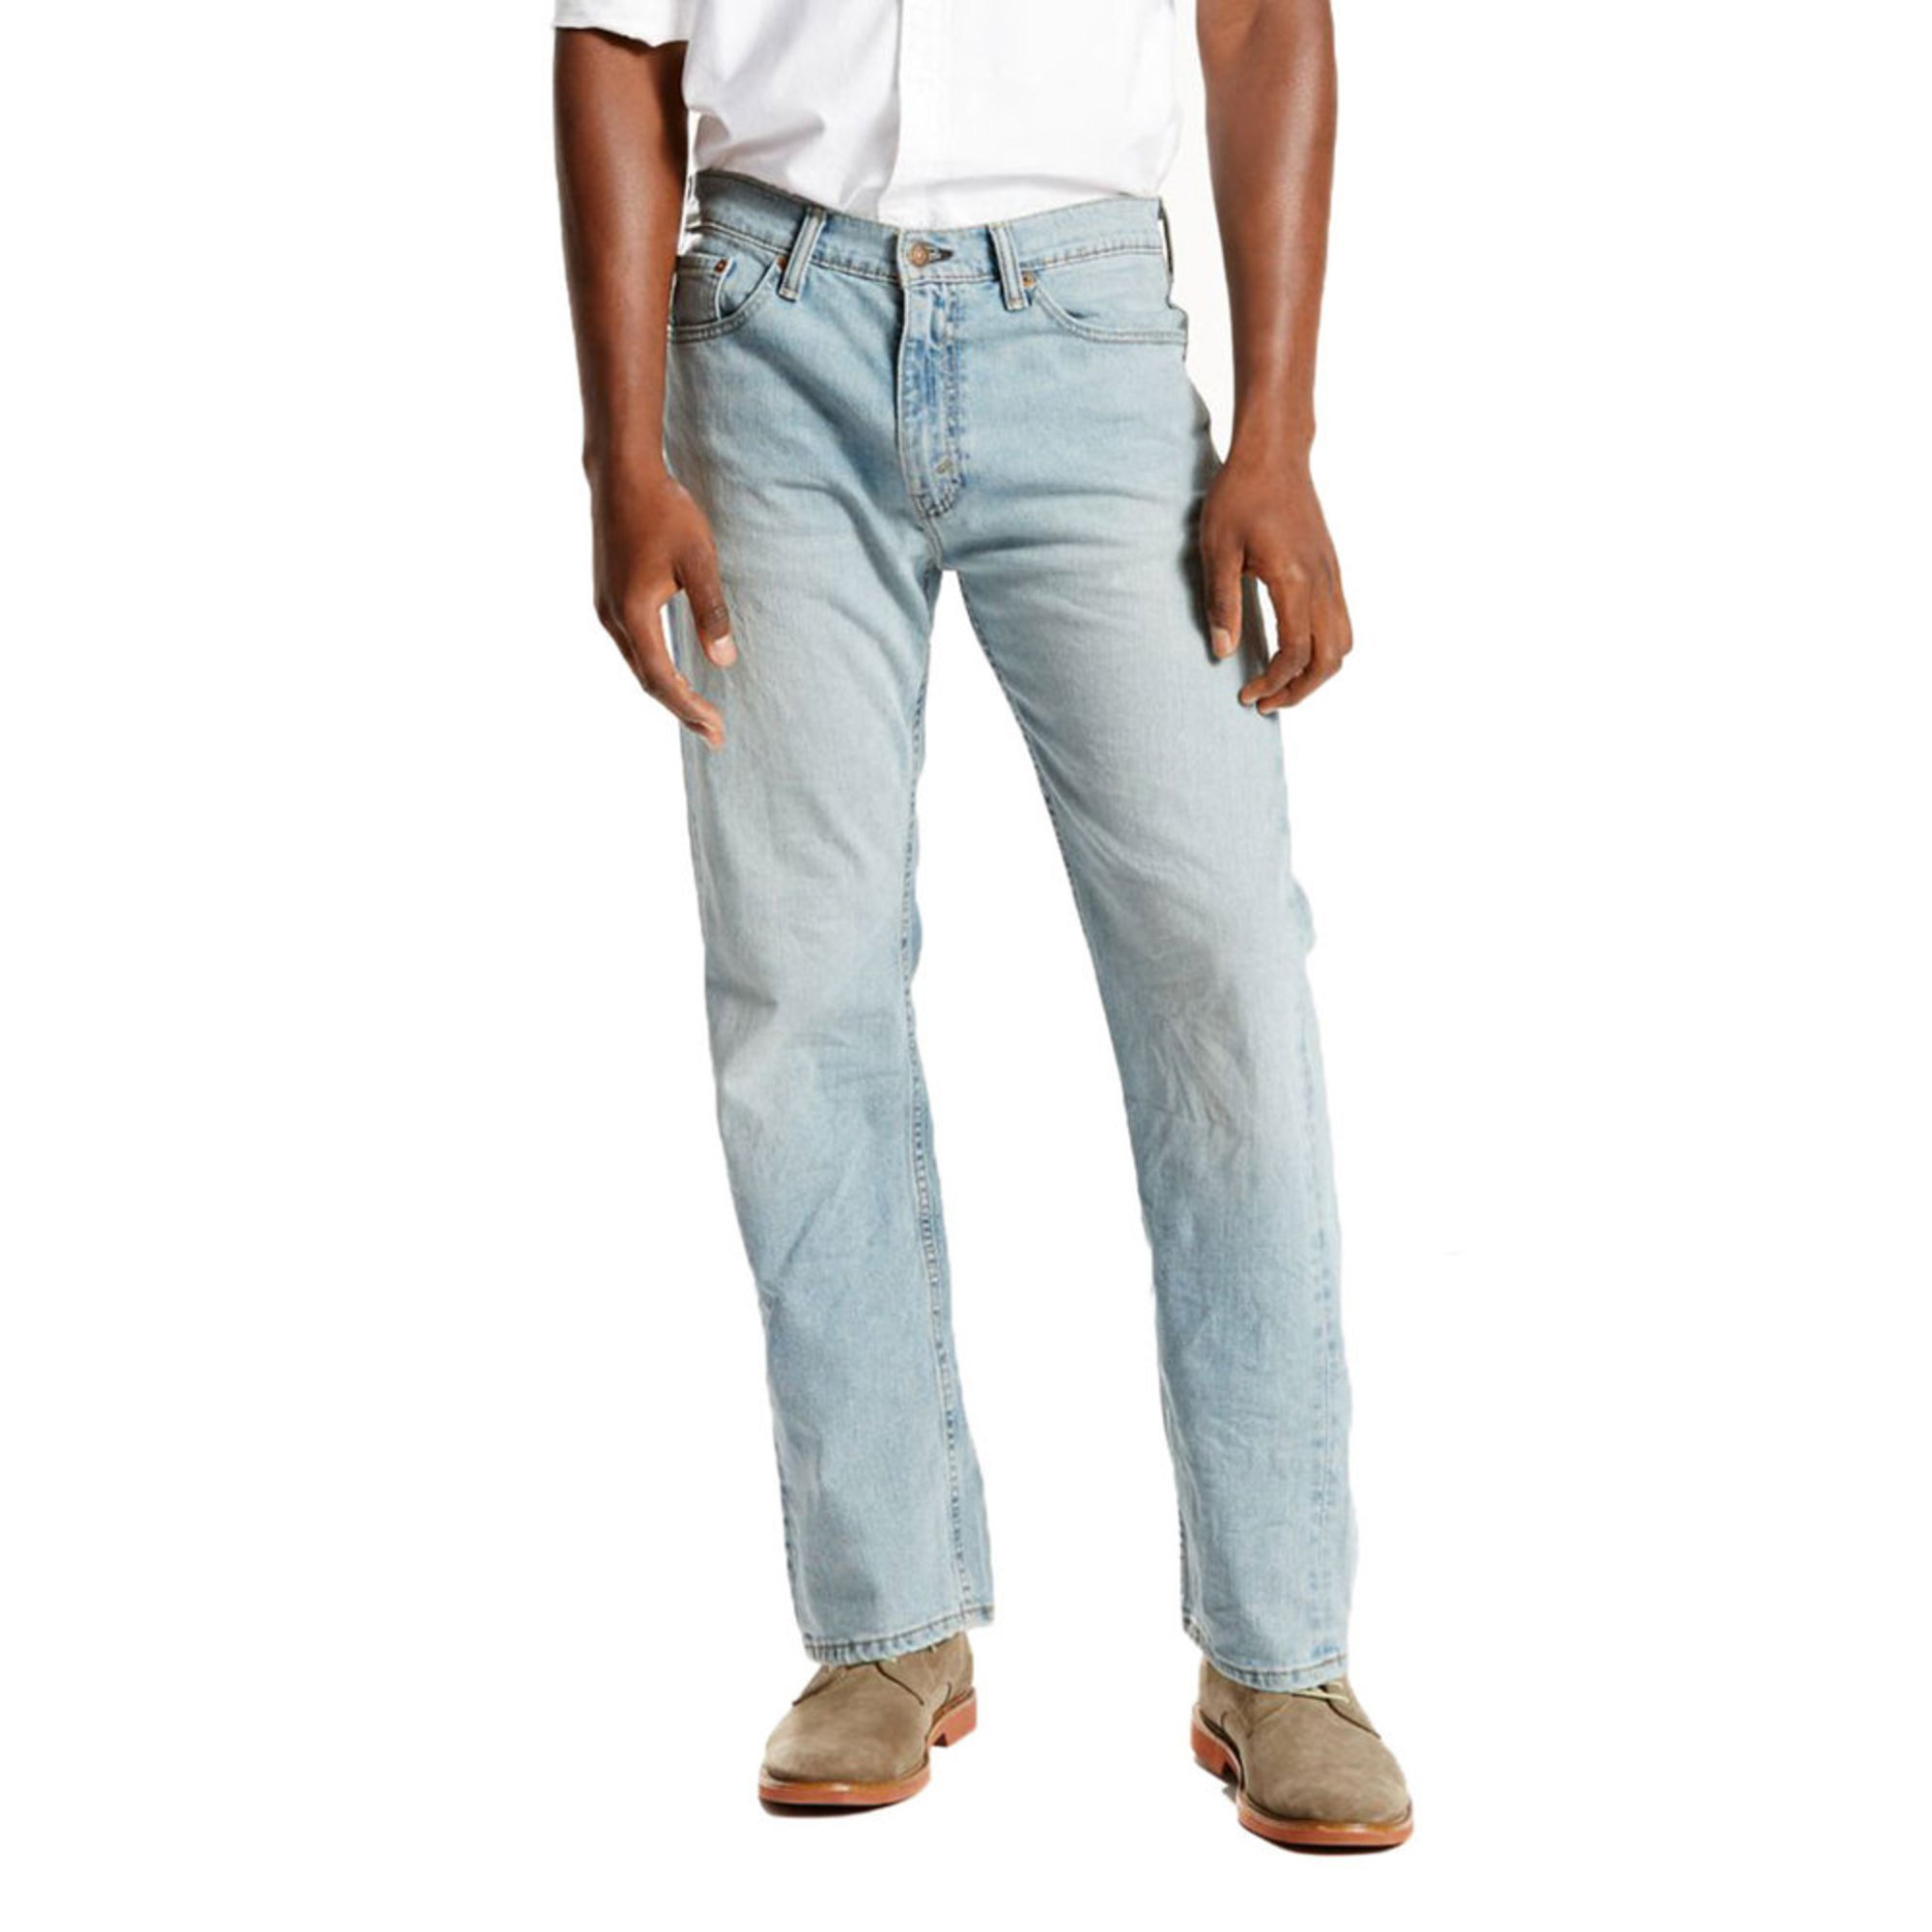 589b01d5f2 Levi's Men's 505 Straight Leg Stretch Jeans | Collection Jeans ...